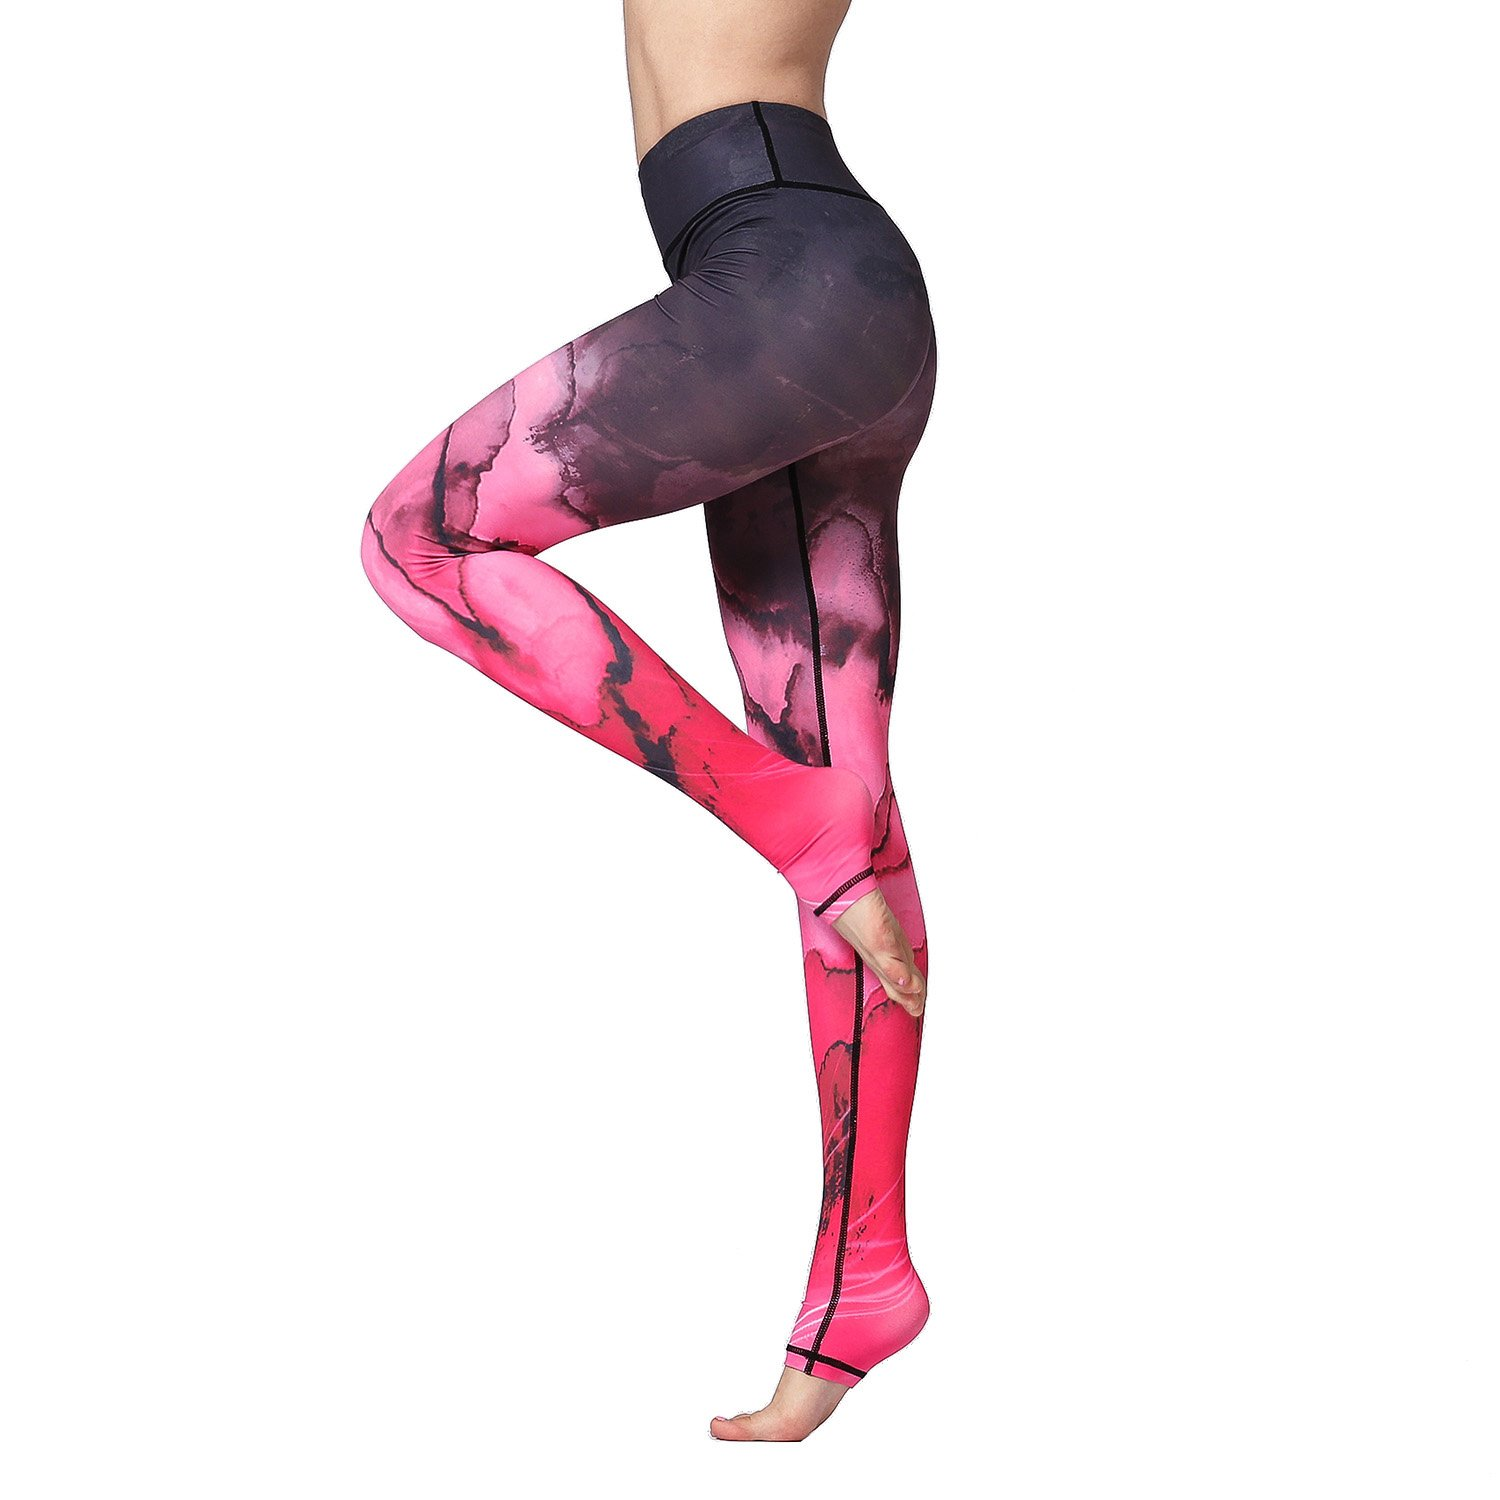 Hk89 Red Witkey Printed Extra Long Women Yoga Leggings High Waist Tummy Control Over The Heel Yoga Pants